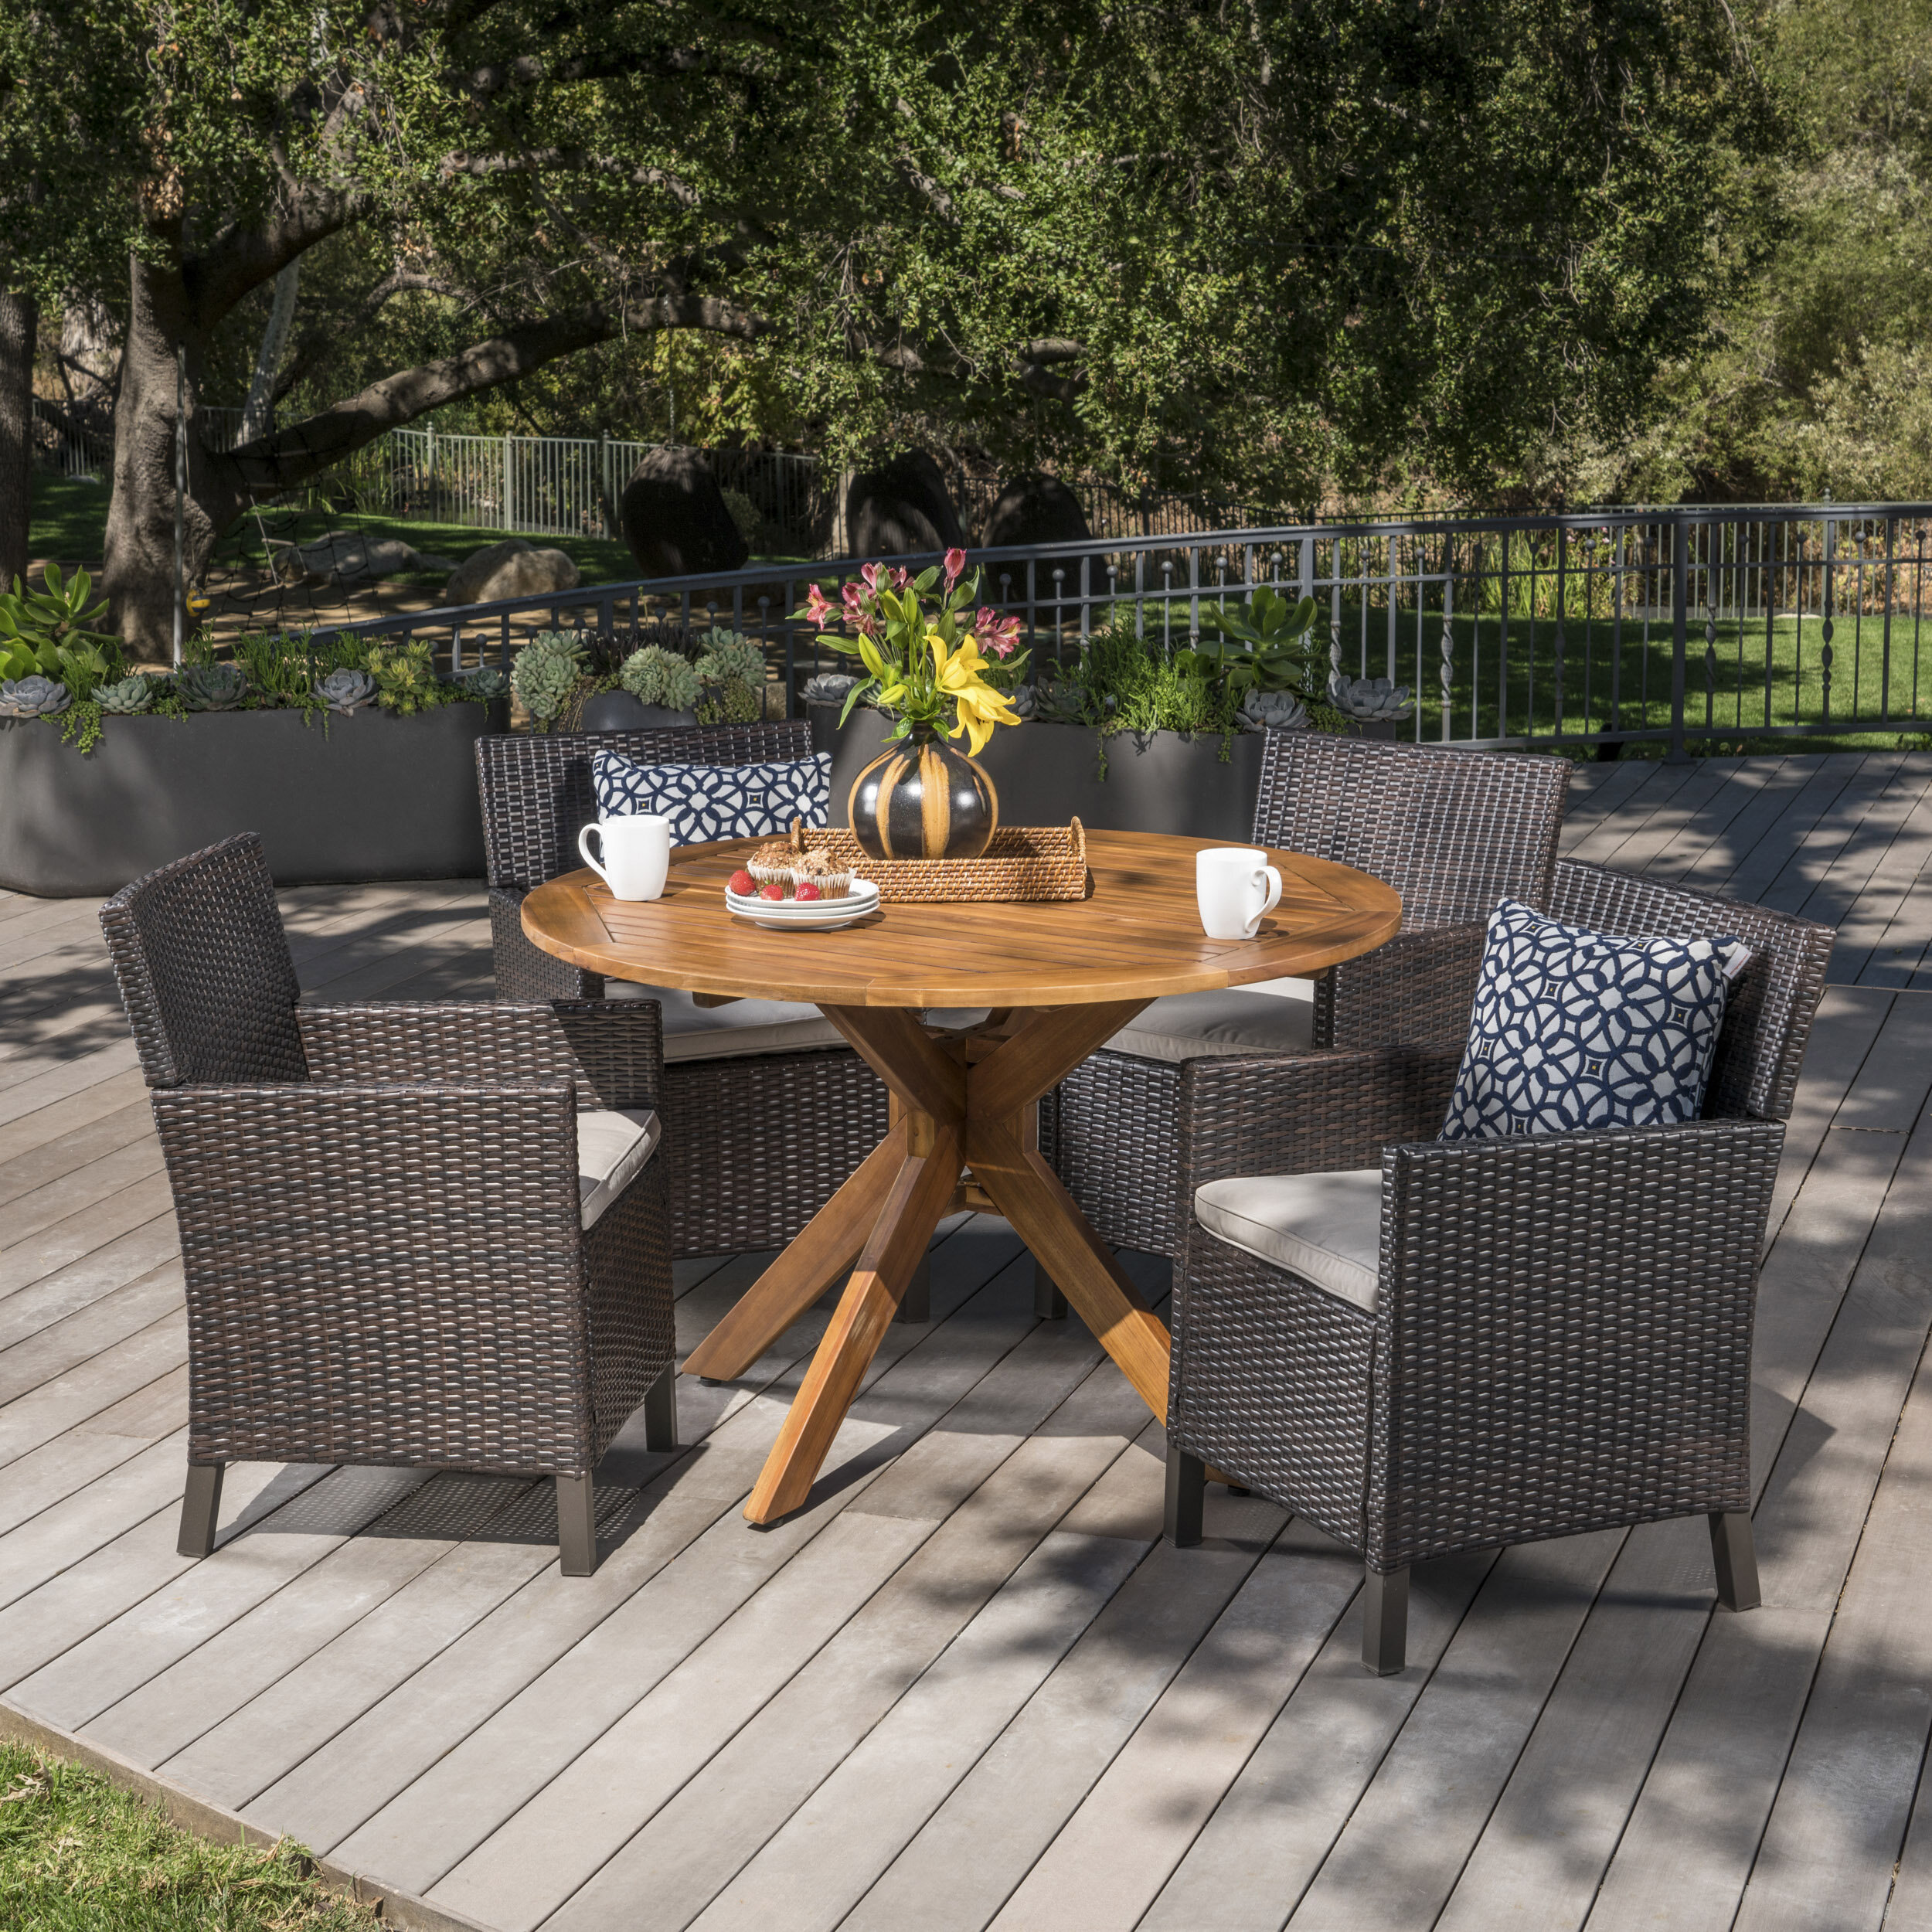 Pilcher Outdoor Wicker Rectangular 5 Piece Dining Set with Cushions